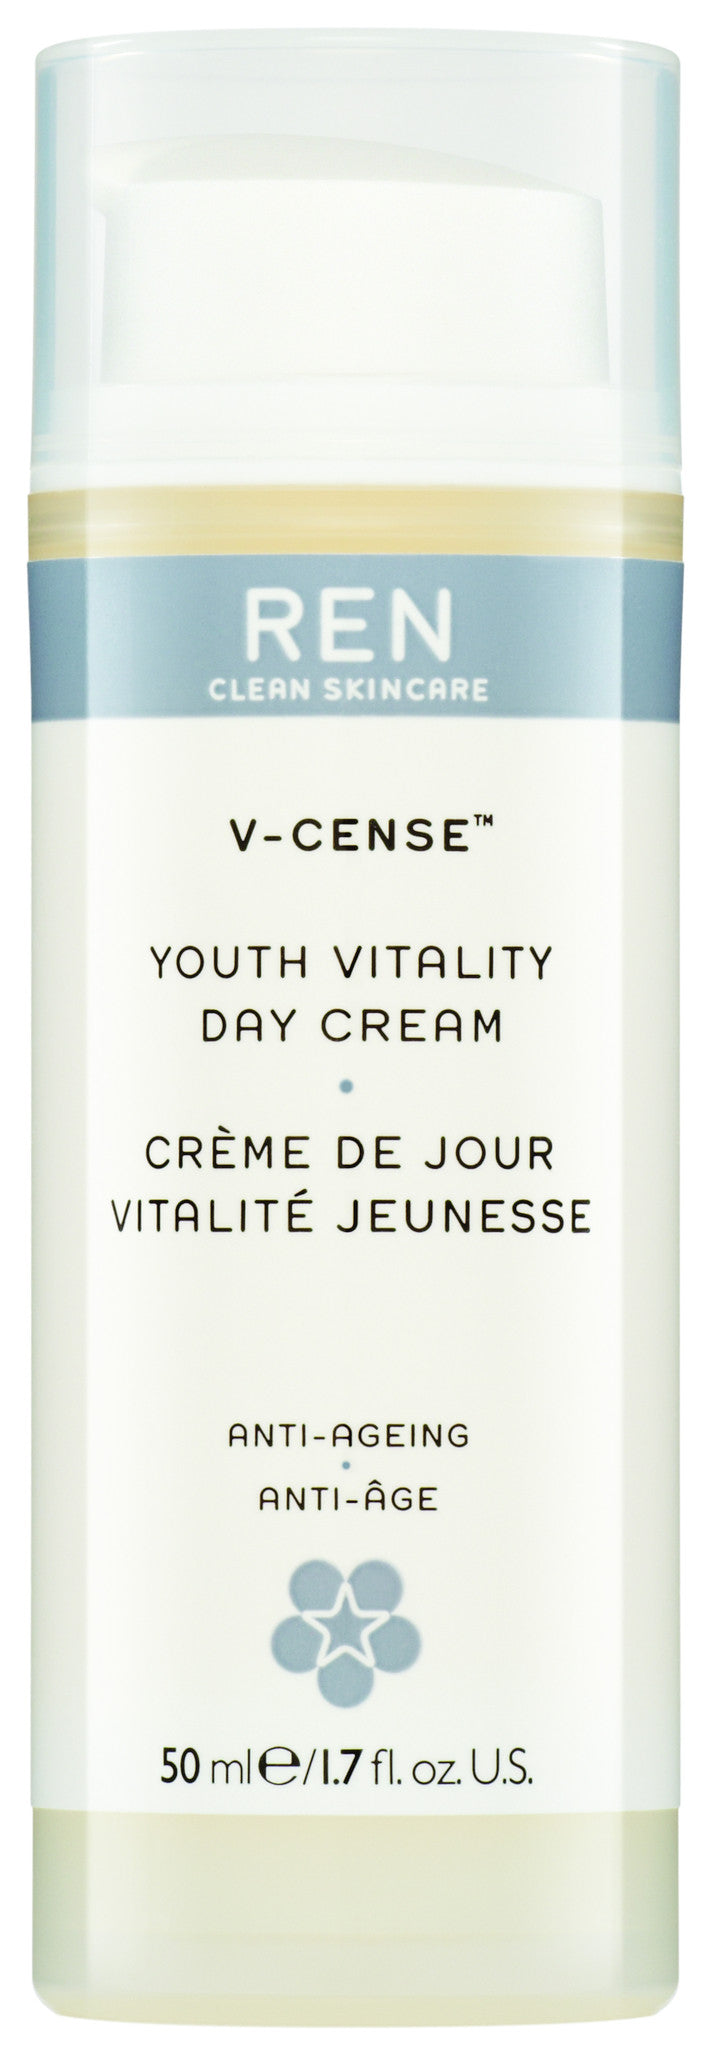 V-Cense Youth Vitality Day Cream